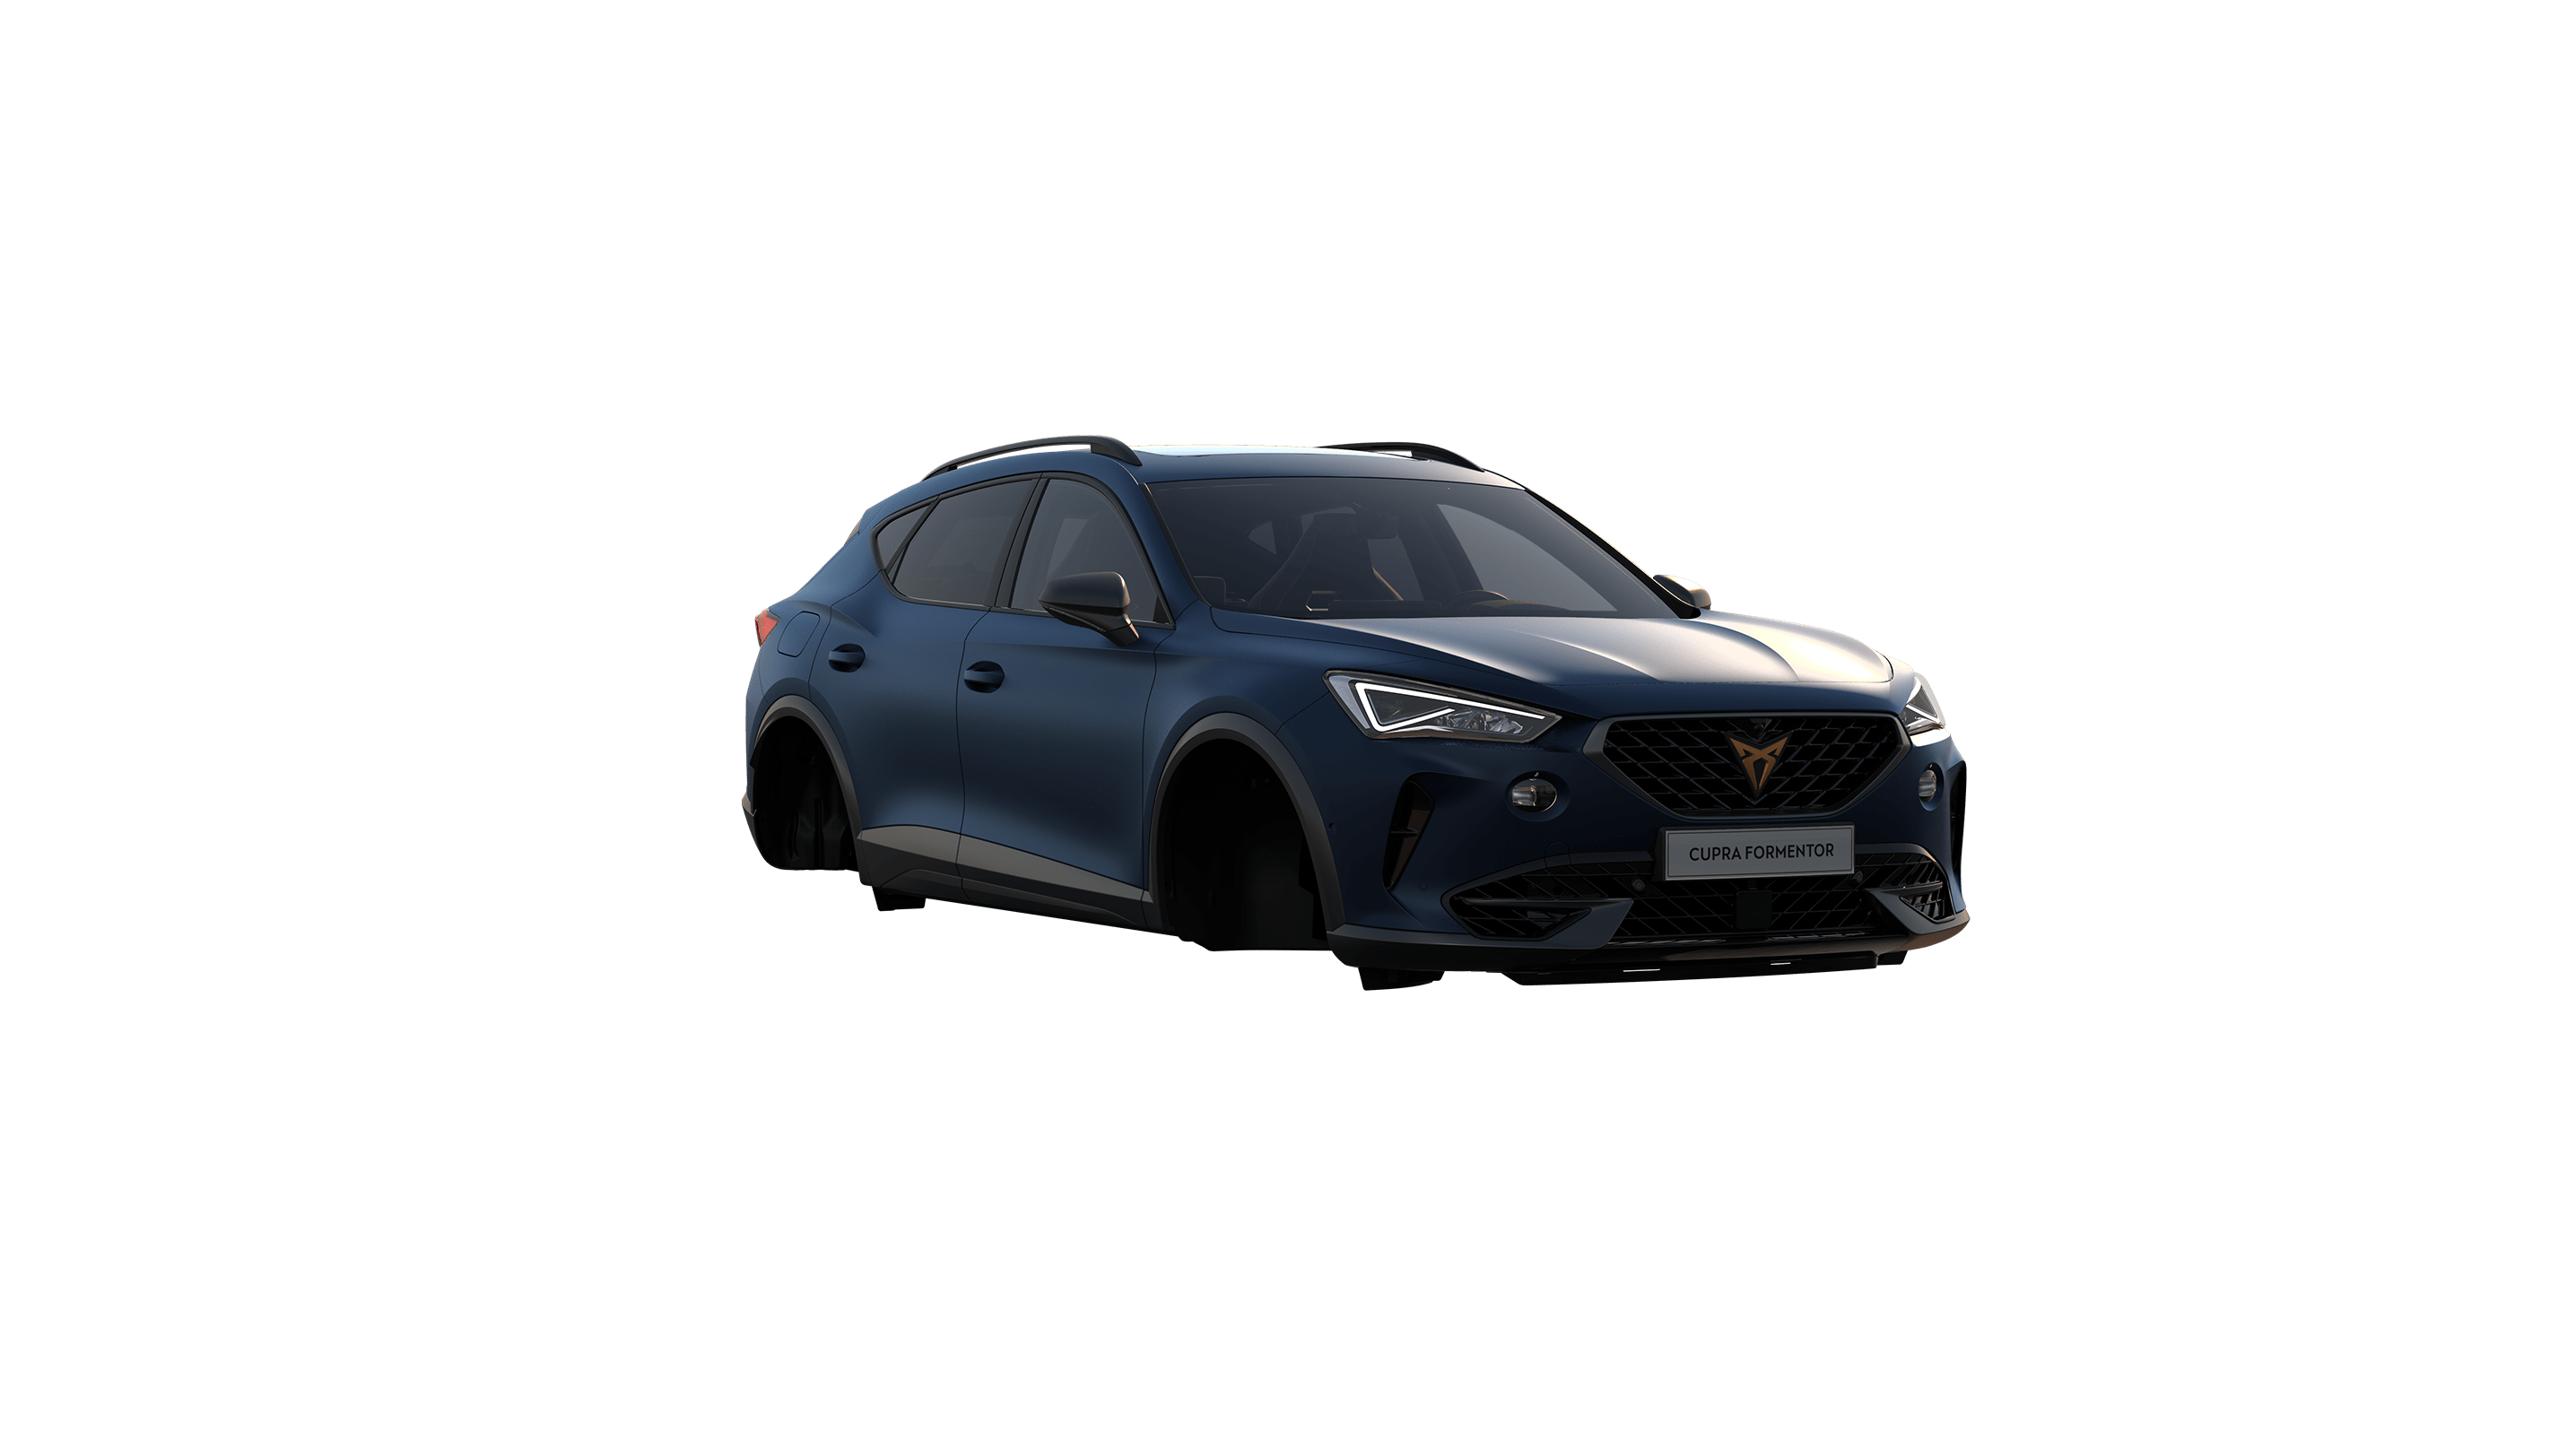 new cupra formentor available in petrol blue matte colour